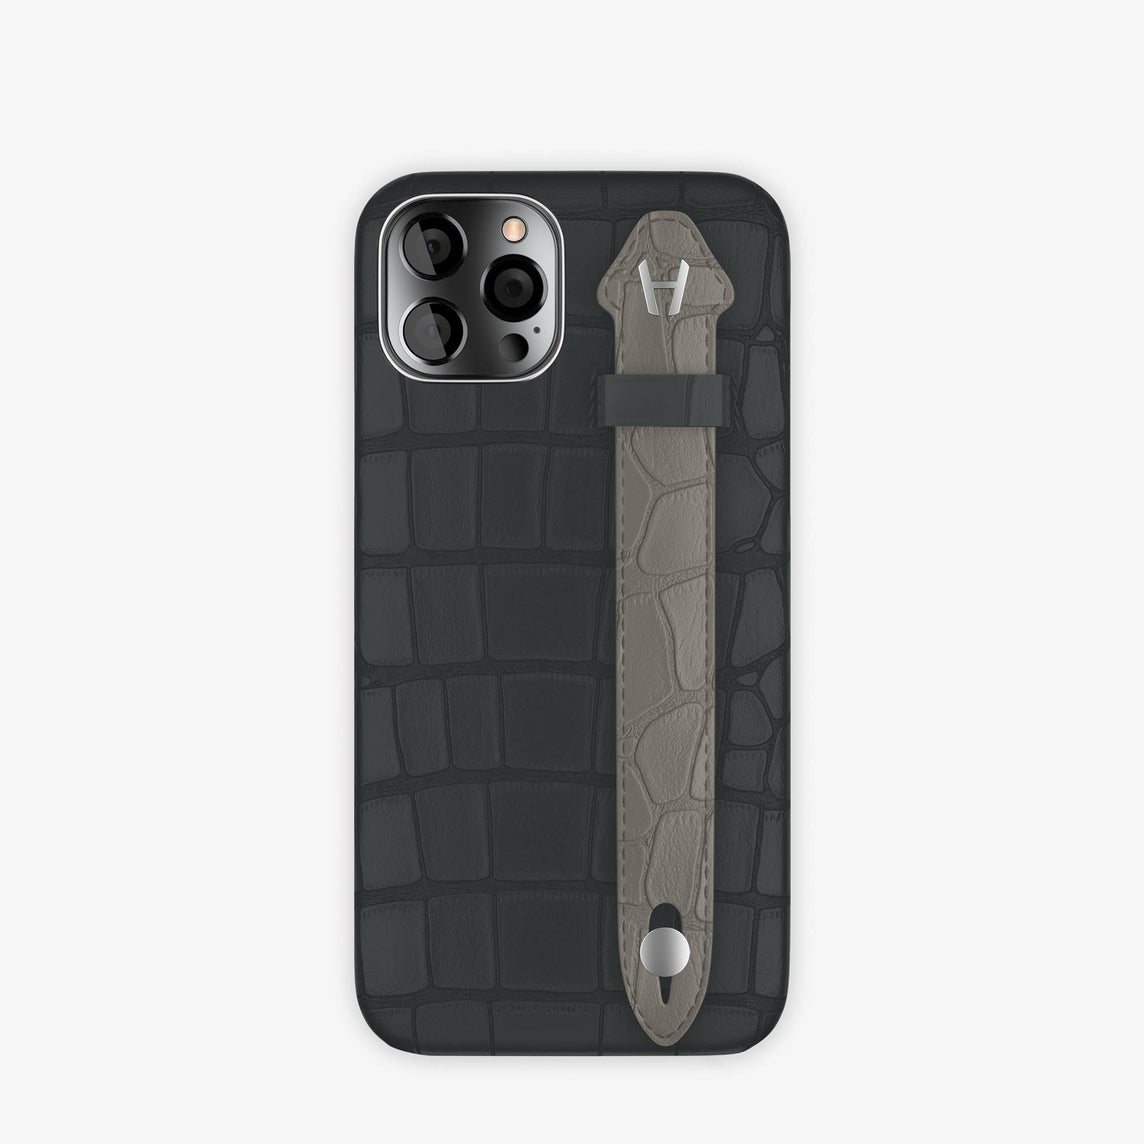 Alligator Side Finger Case iPhone 12 & iPhone 12 Pro | Anthracite/Grey Pearl  -Stainless Steel